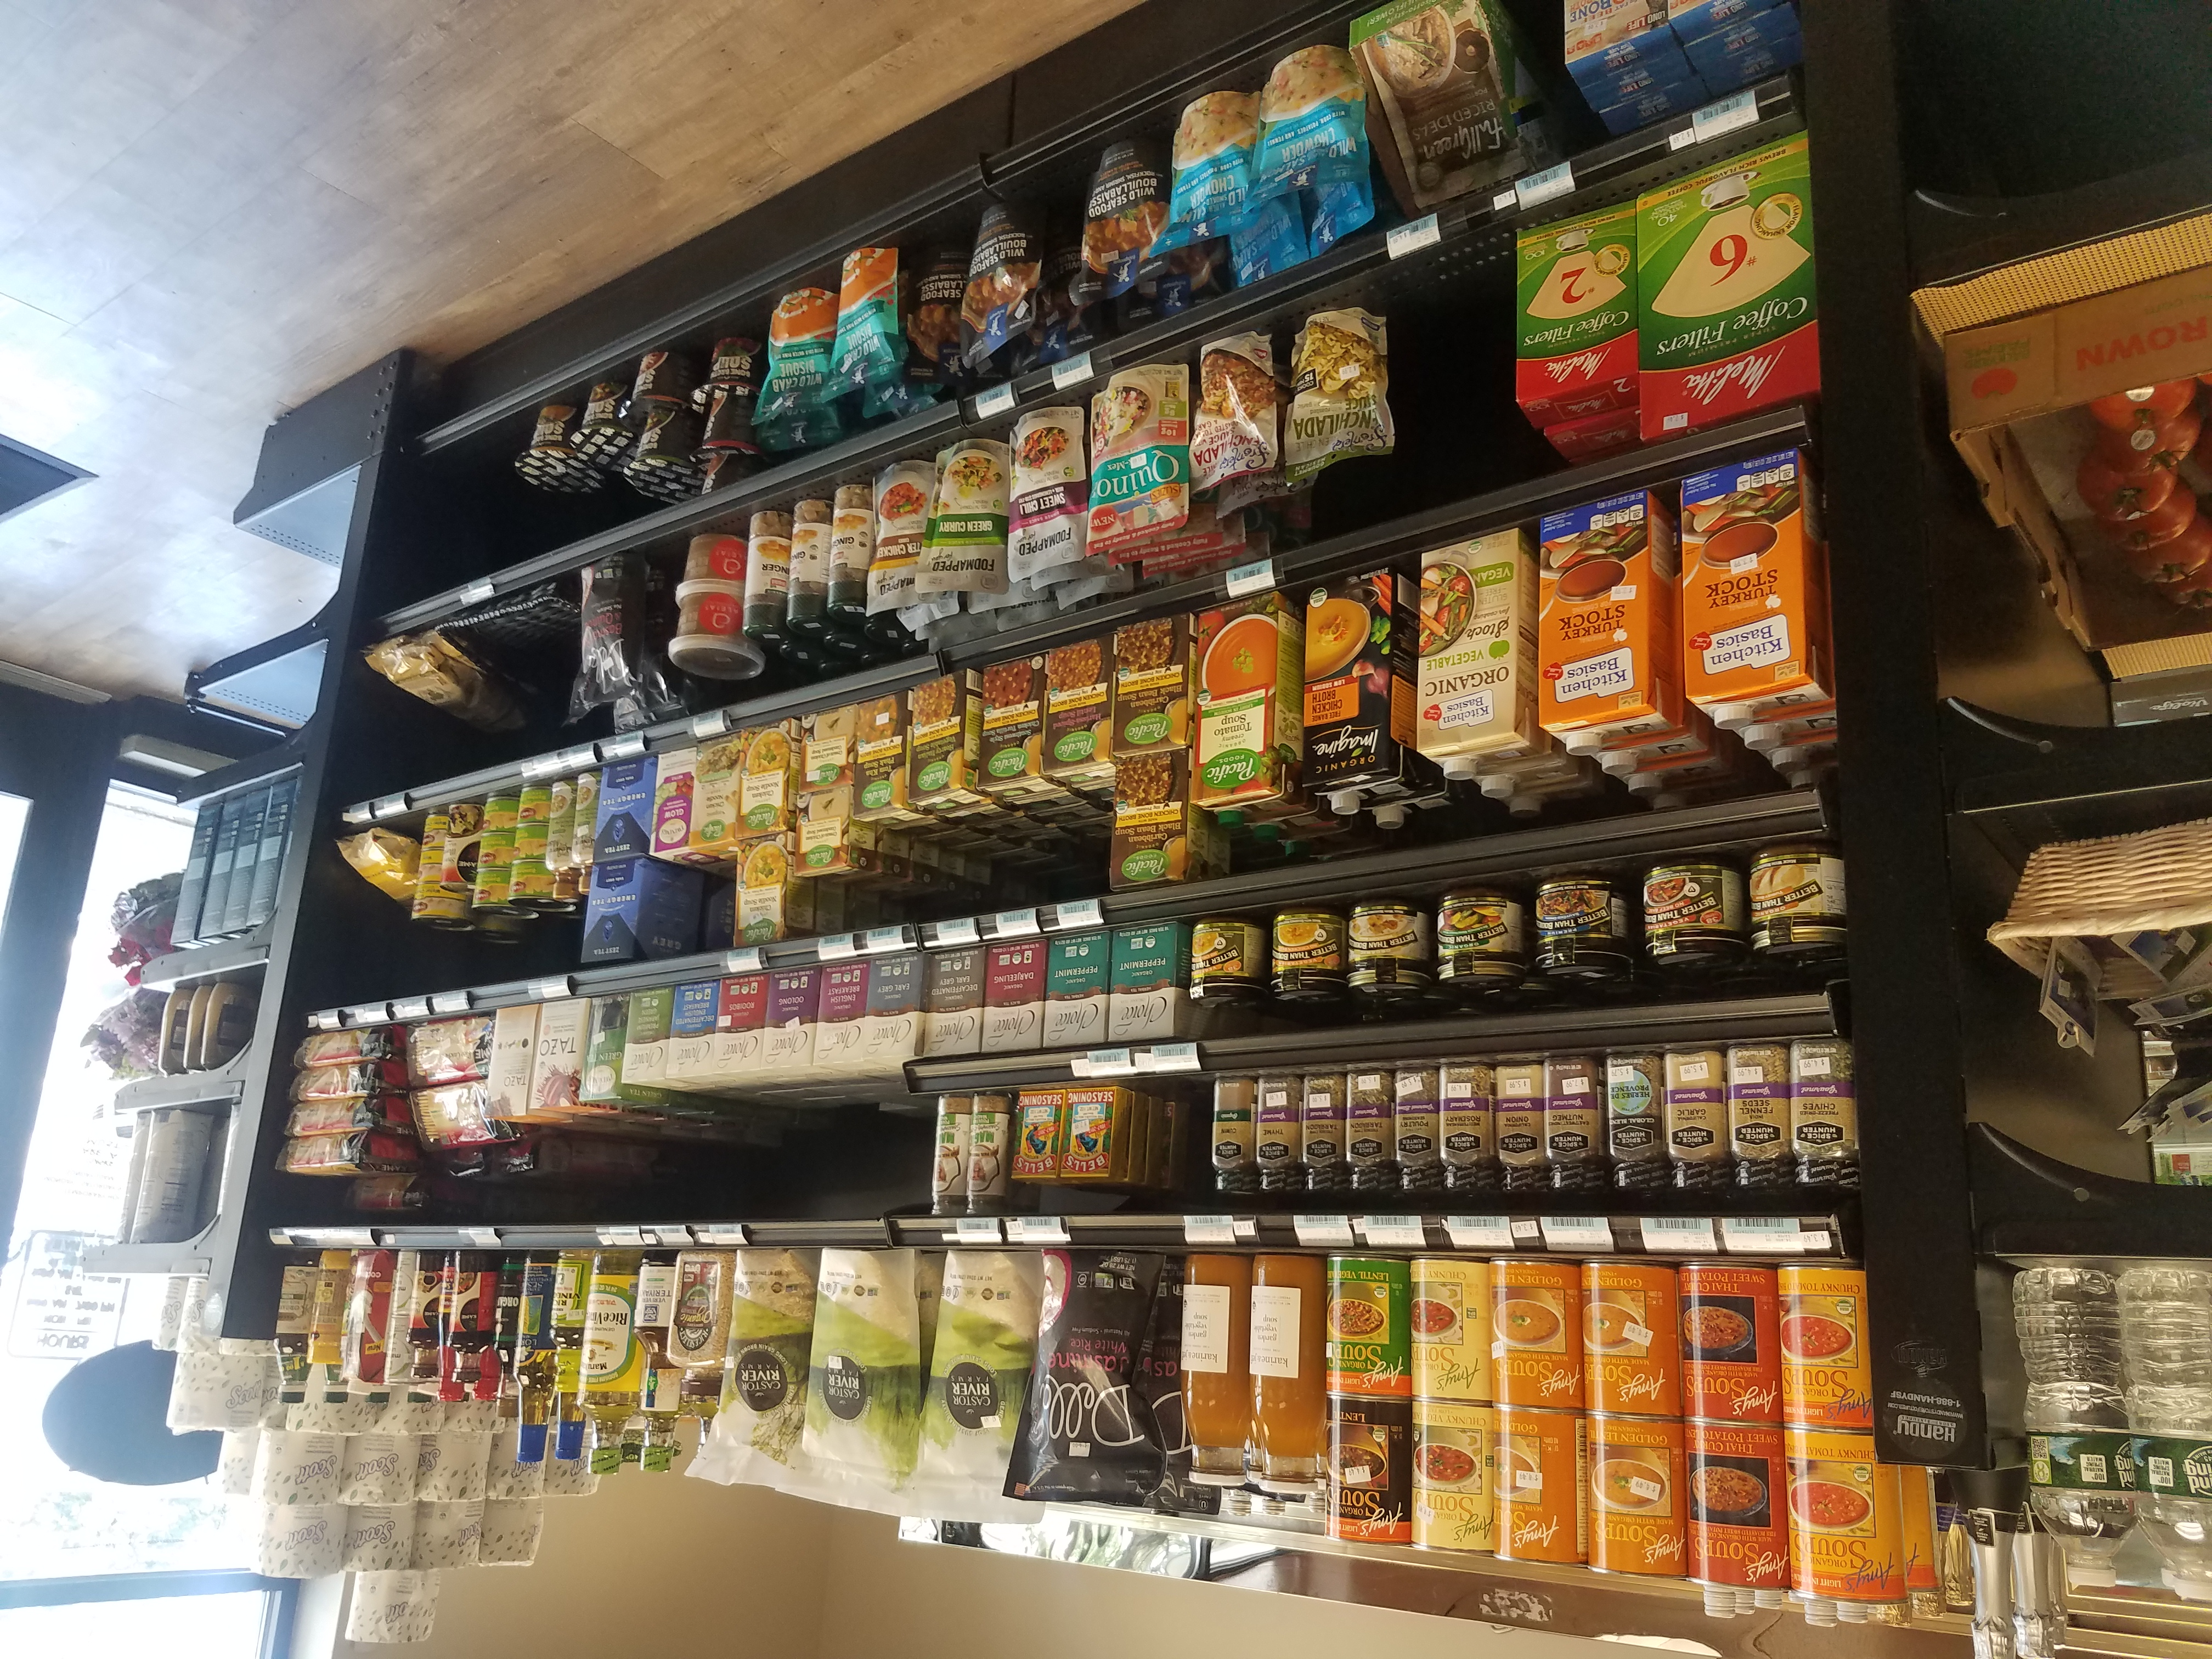 A photo of black shelves housing various canned and packaged soups, bouillons, spices, and rice.